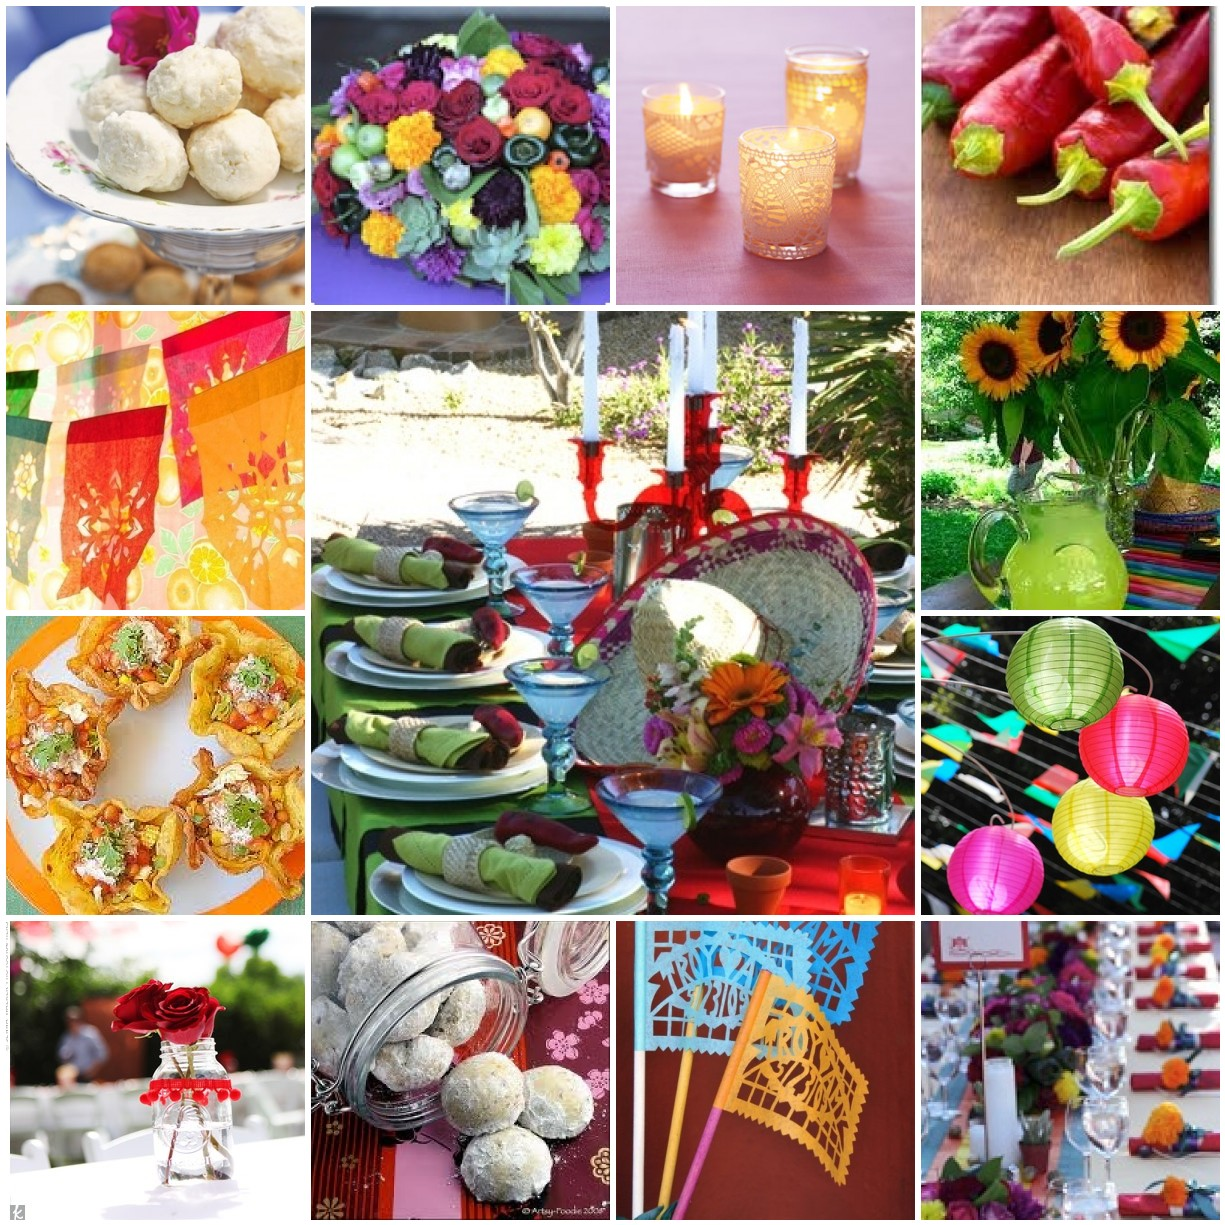 Sheek shindigs march 2011 - Mexican themed party decoration ideas ...